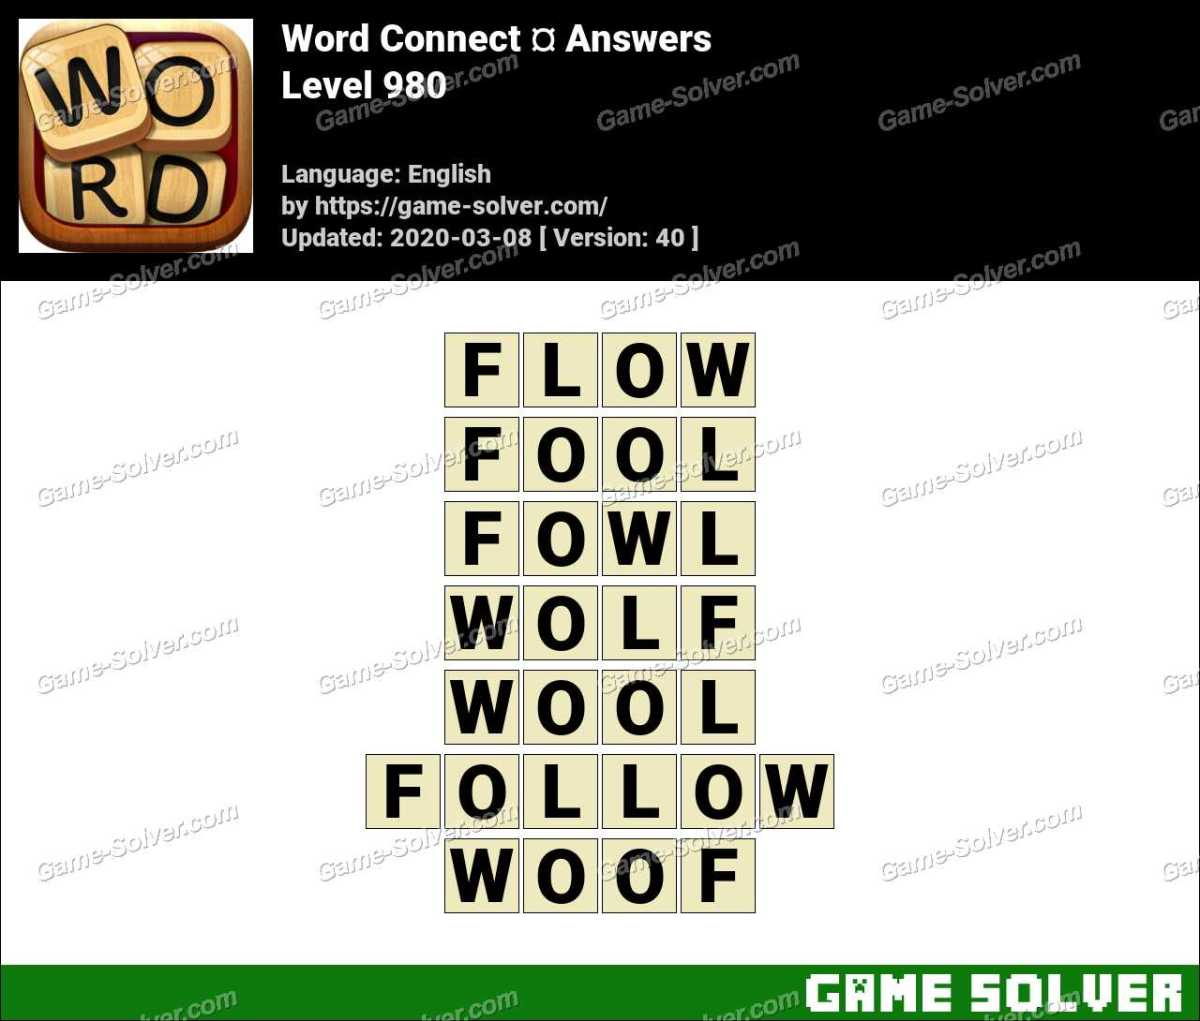 Word Connect Level 980 Answers